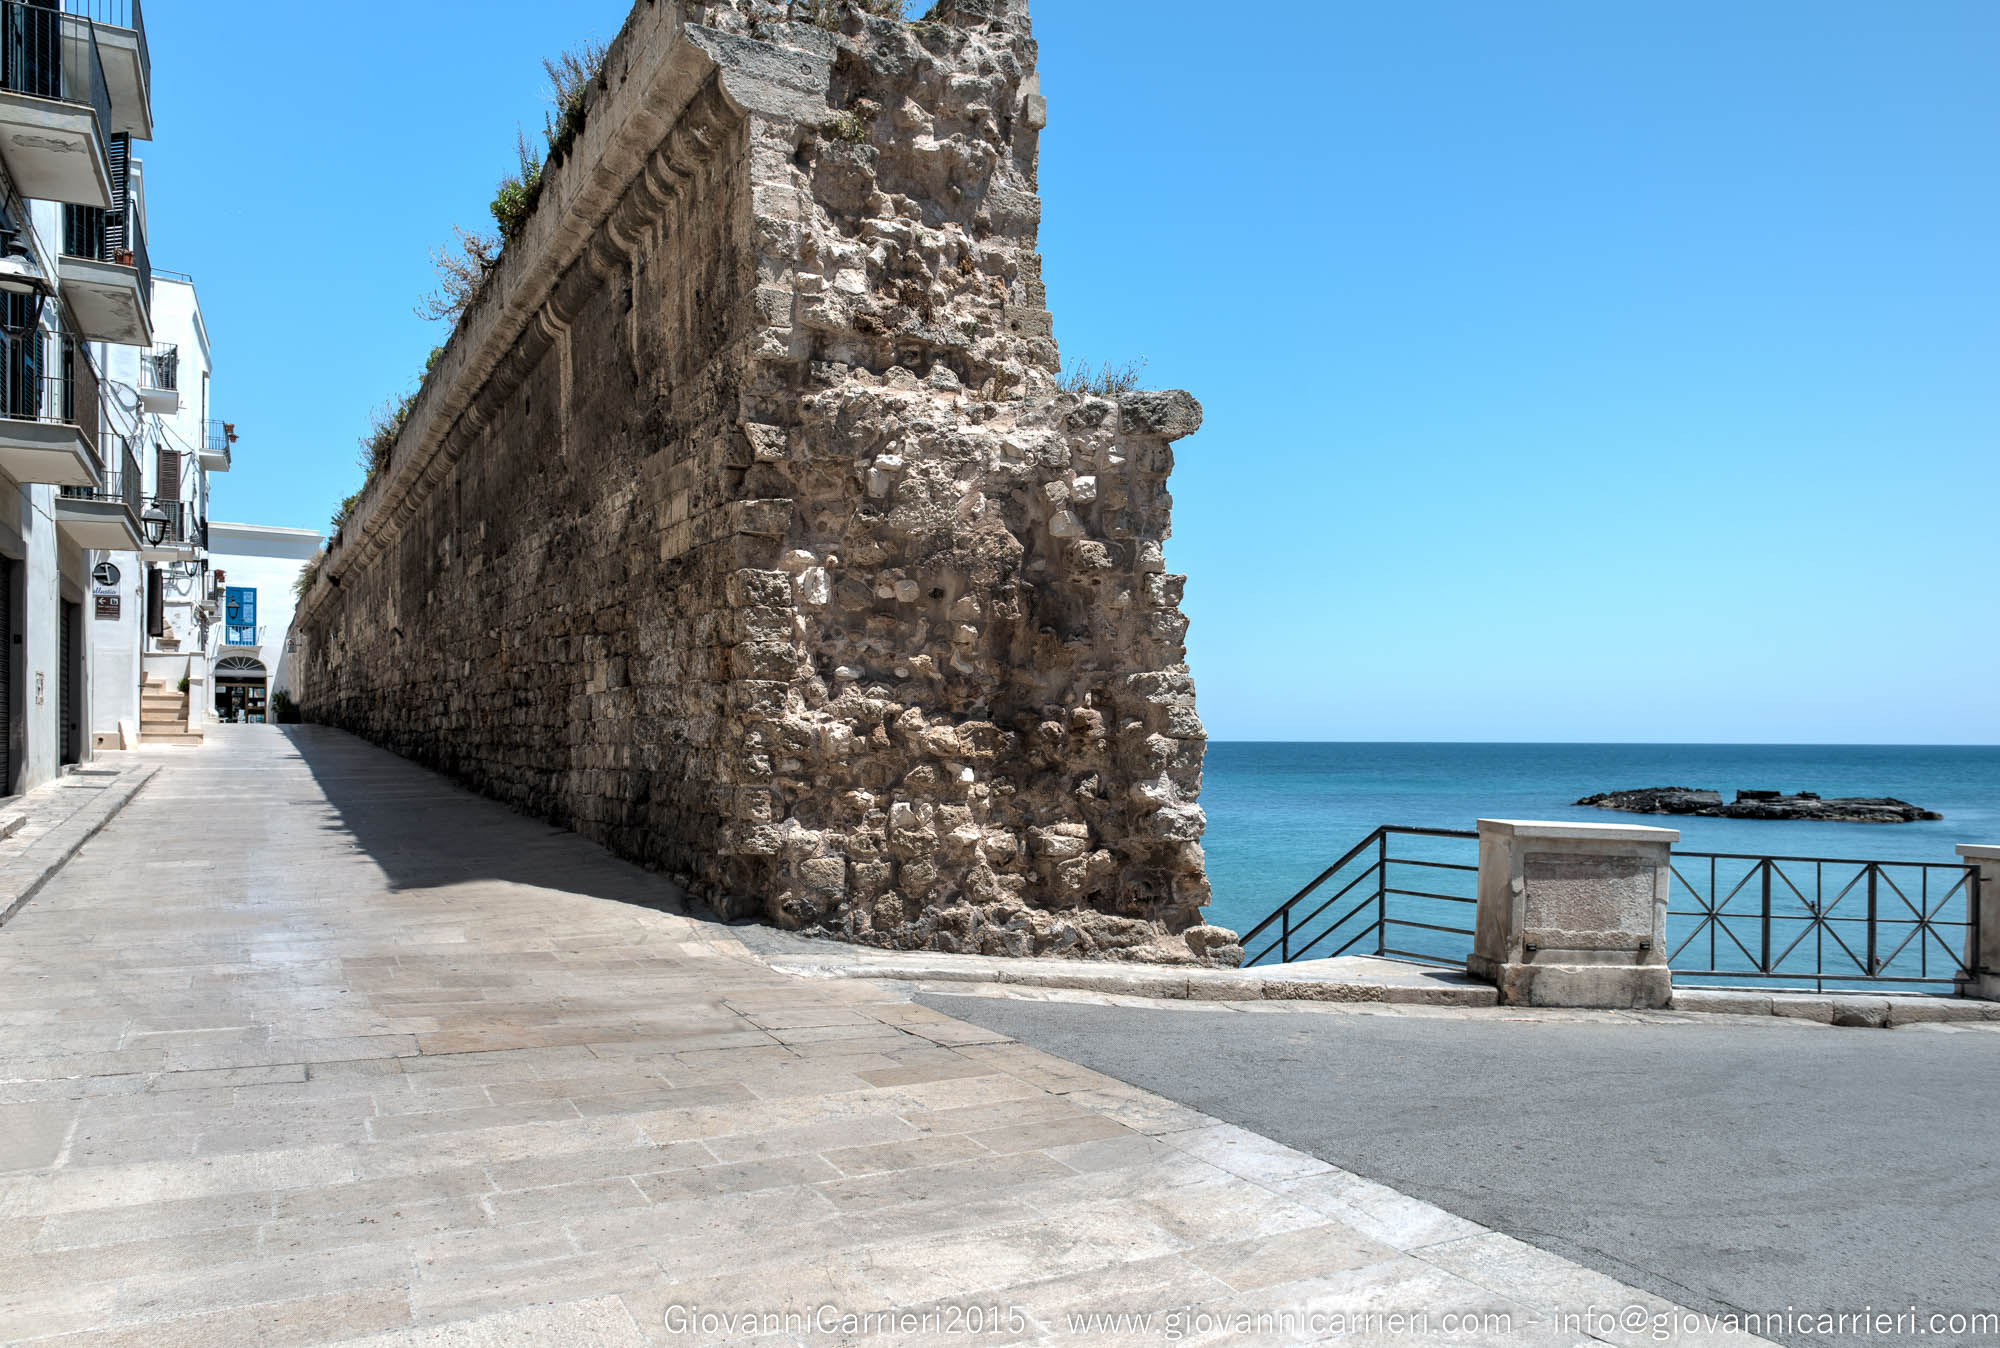 The ancient walls of Monopoli